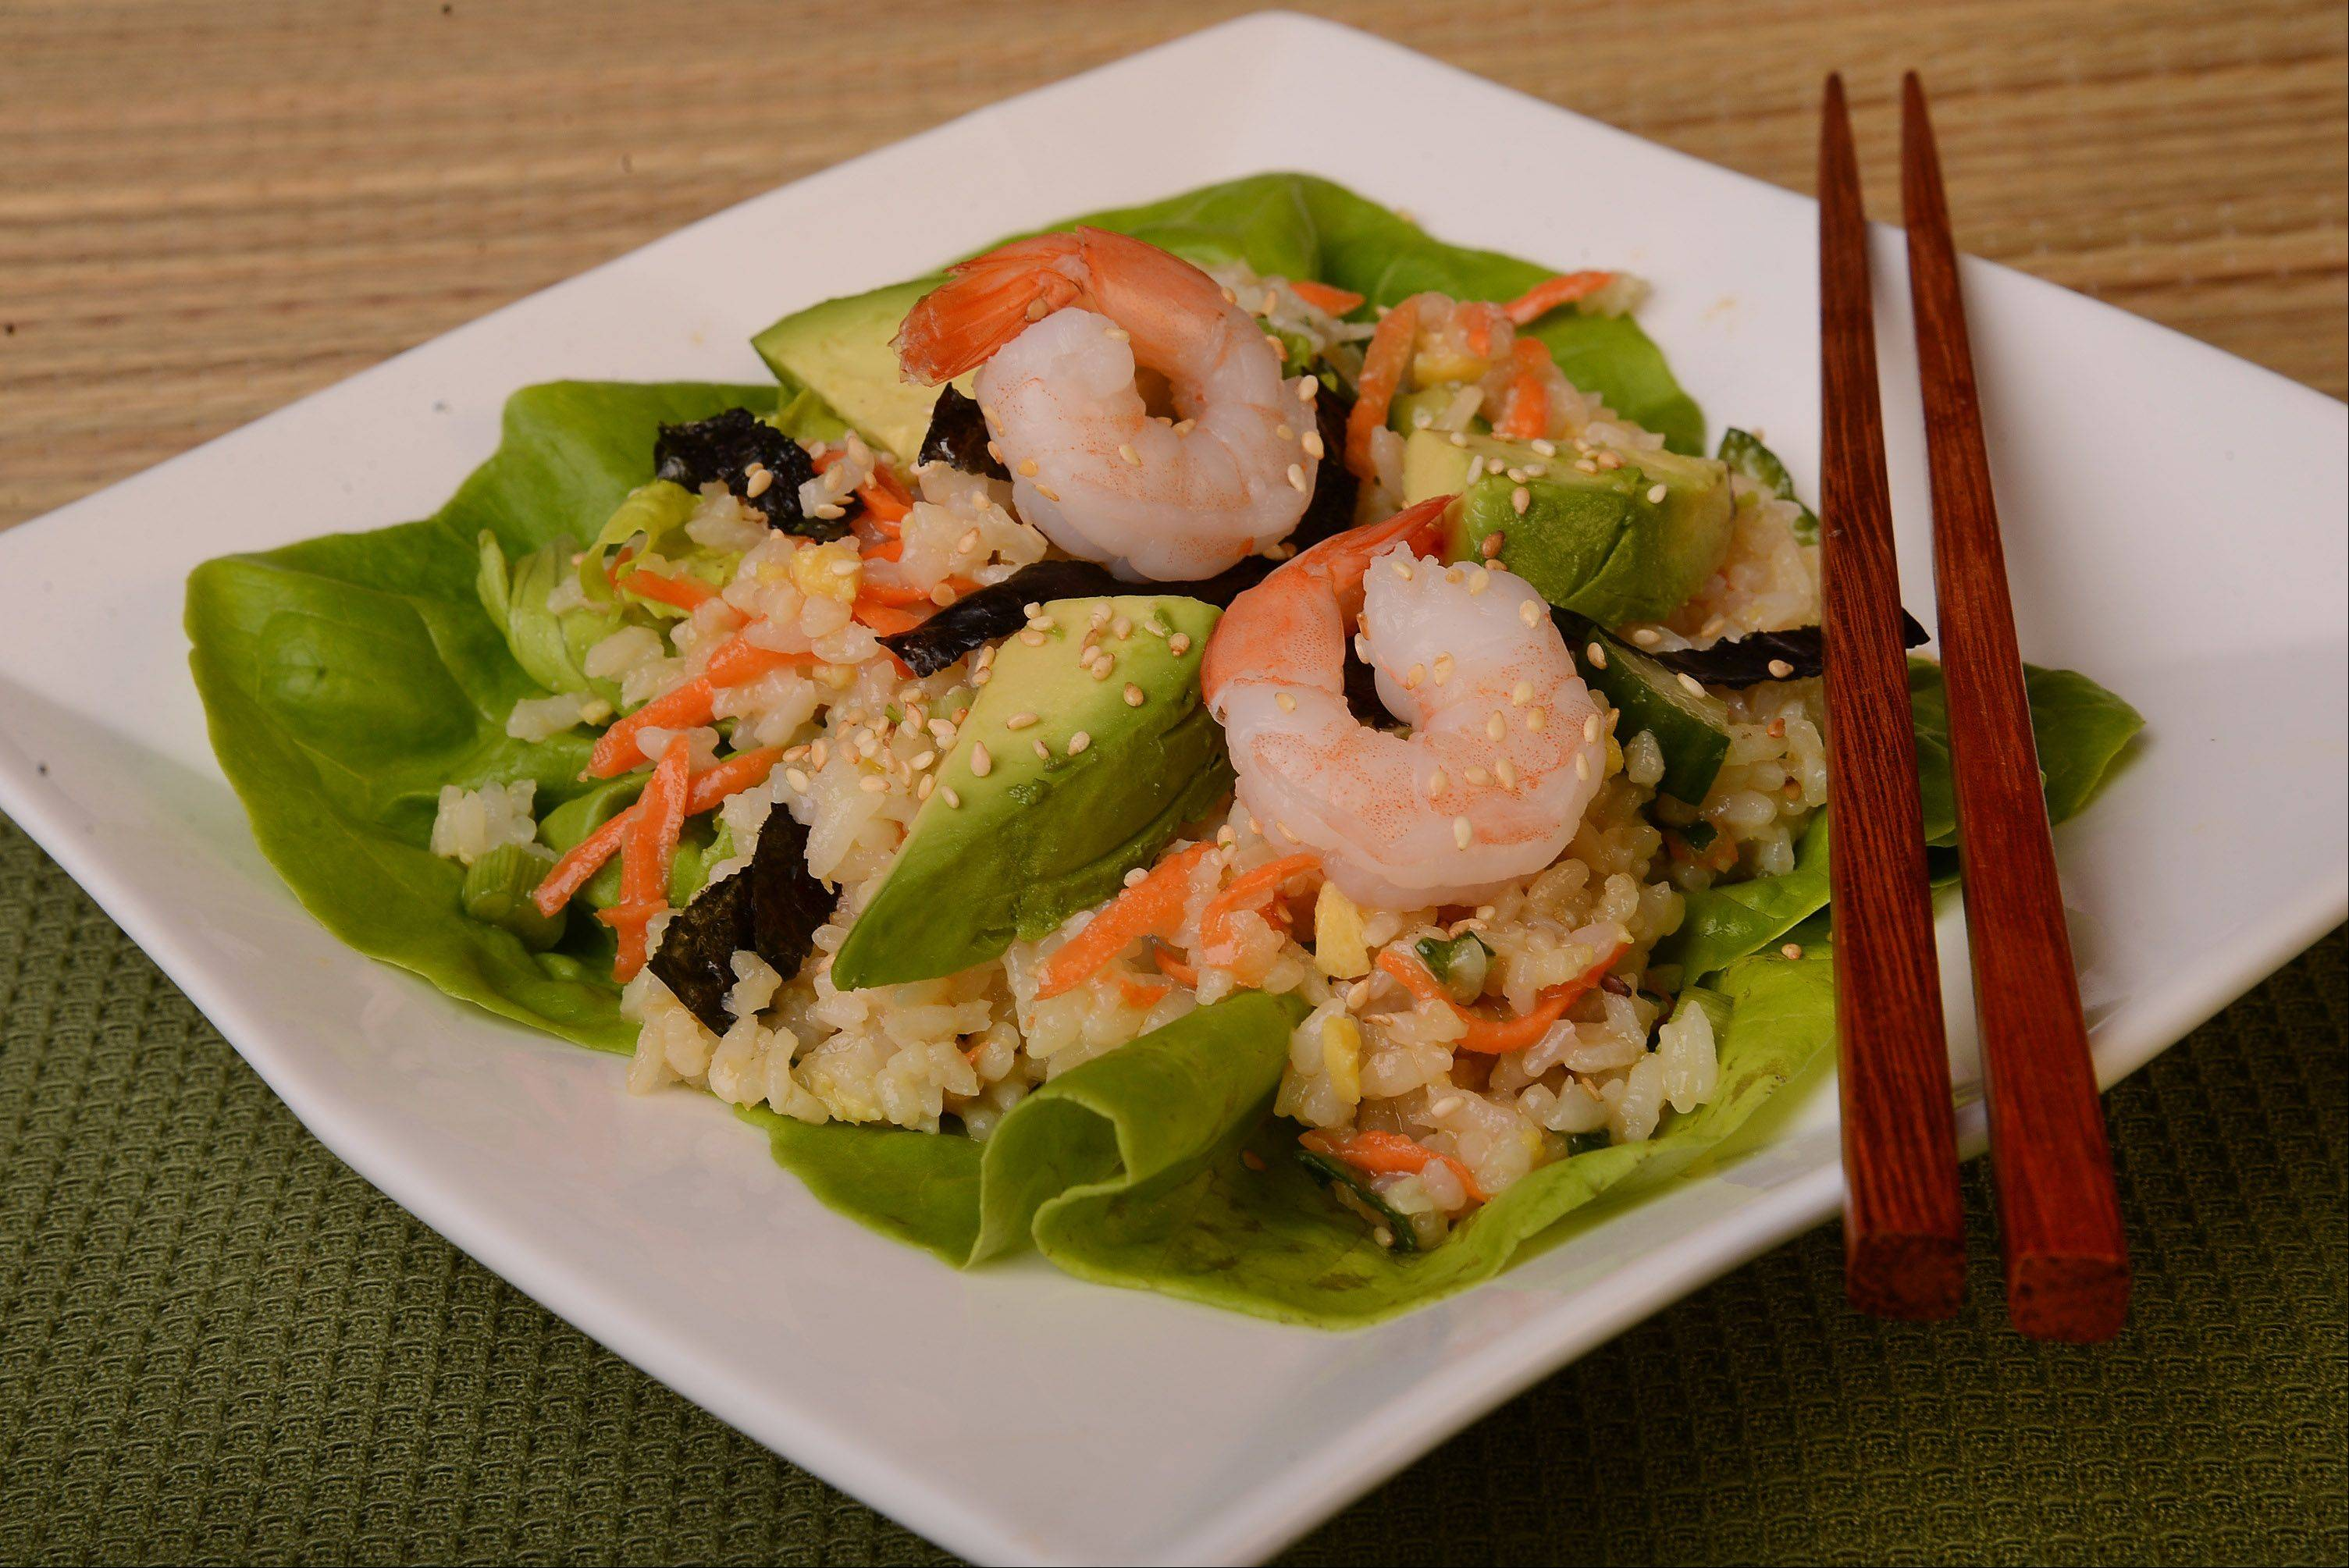 For all the flavor of California rolls at home without the hassle, toss the ingredients with some lettuce and enjoy as a salad.